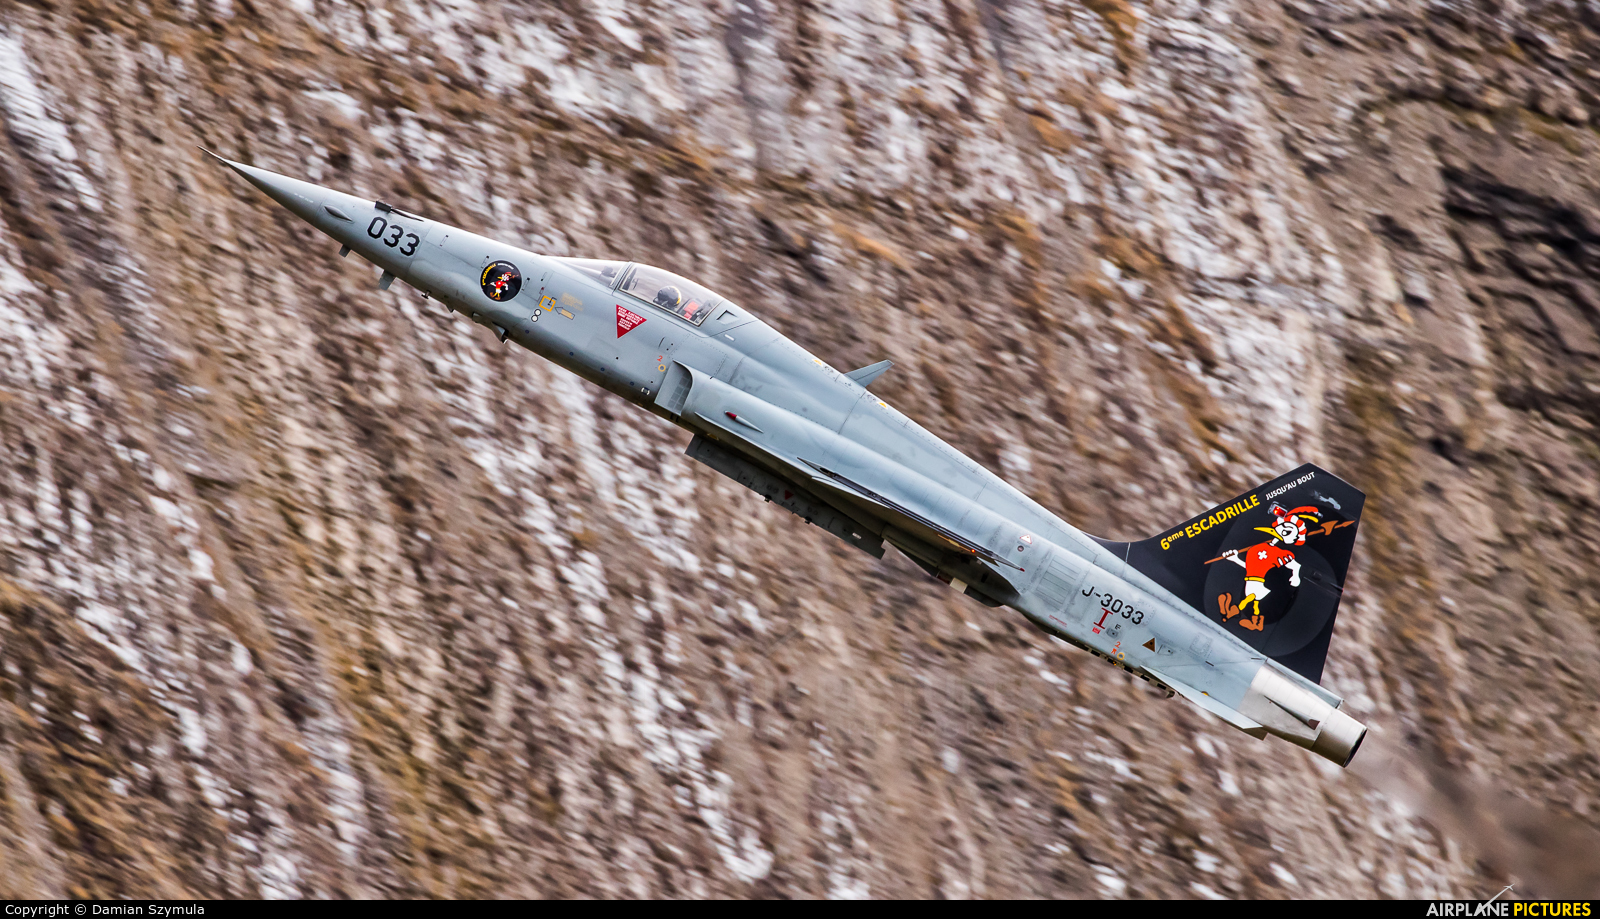 Switzerland - Air Force J-3033 aircraft at Ebenfluhe Range, Axalp